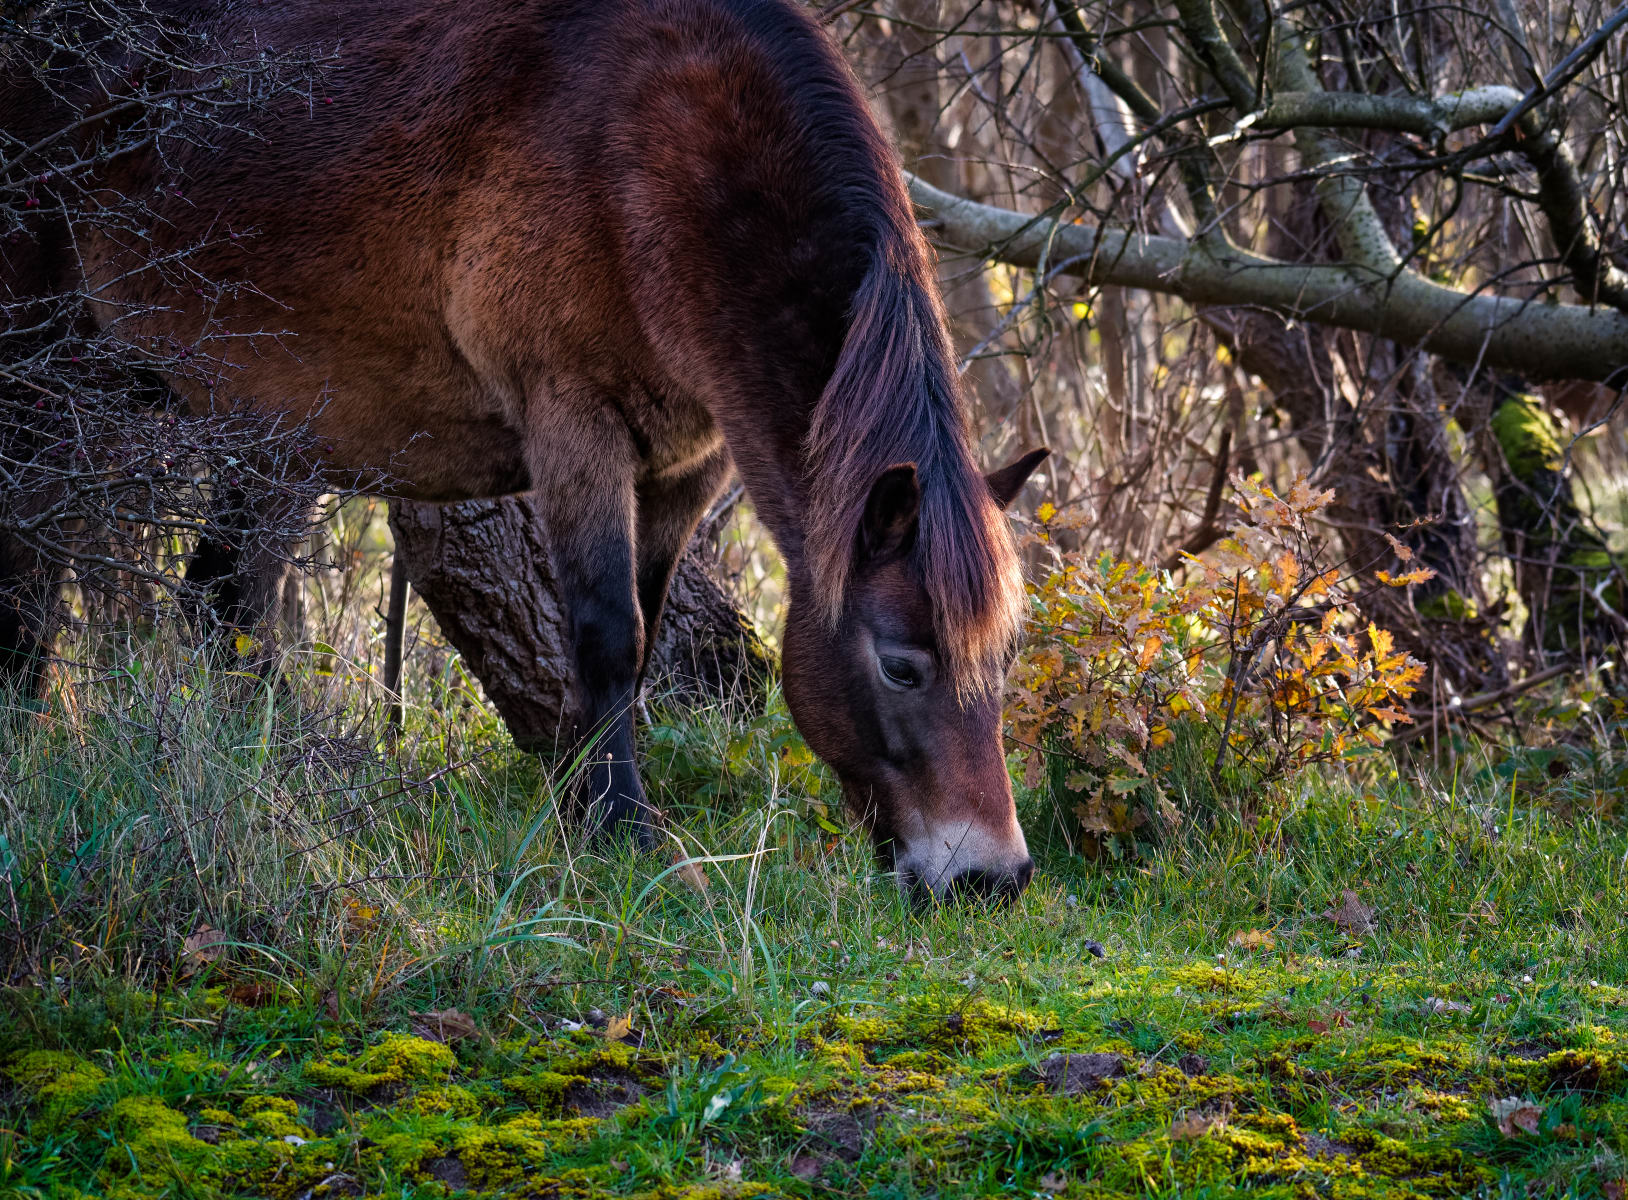 horse grazing on moss covered grass